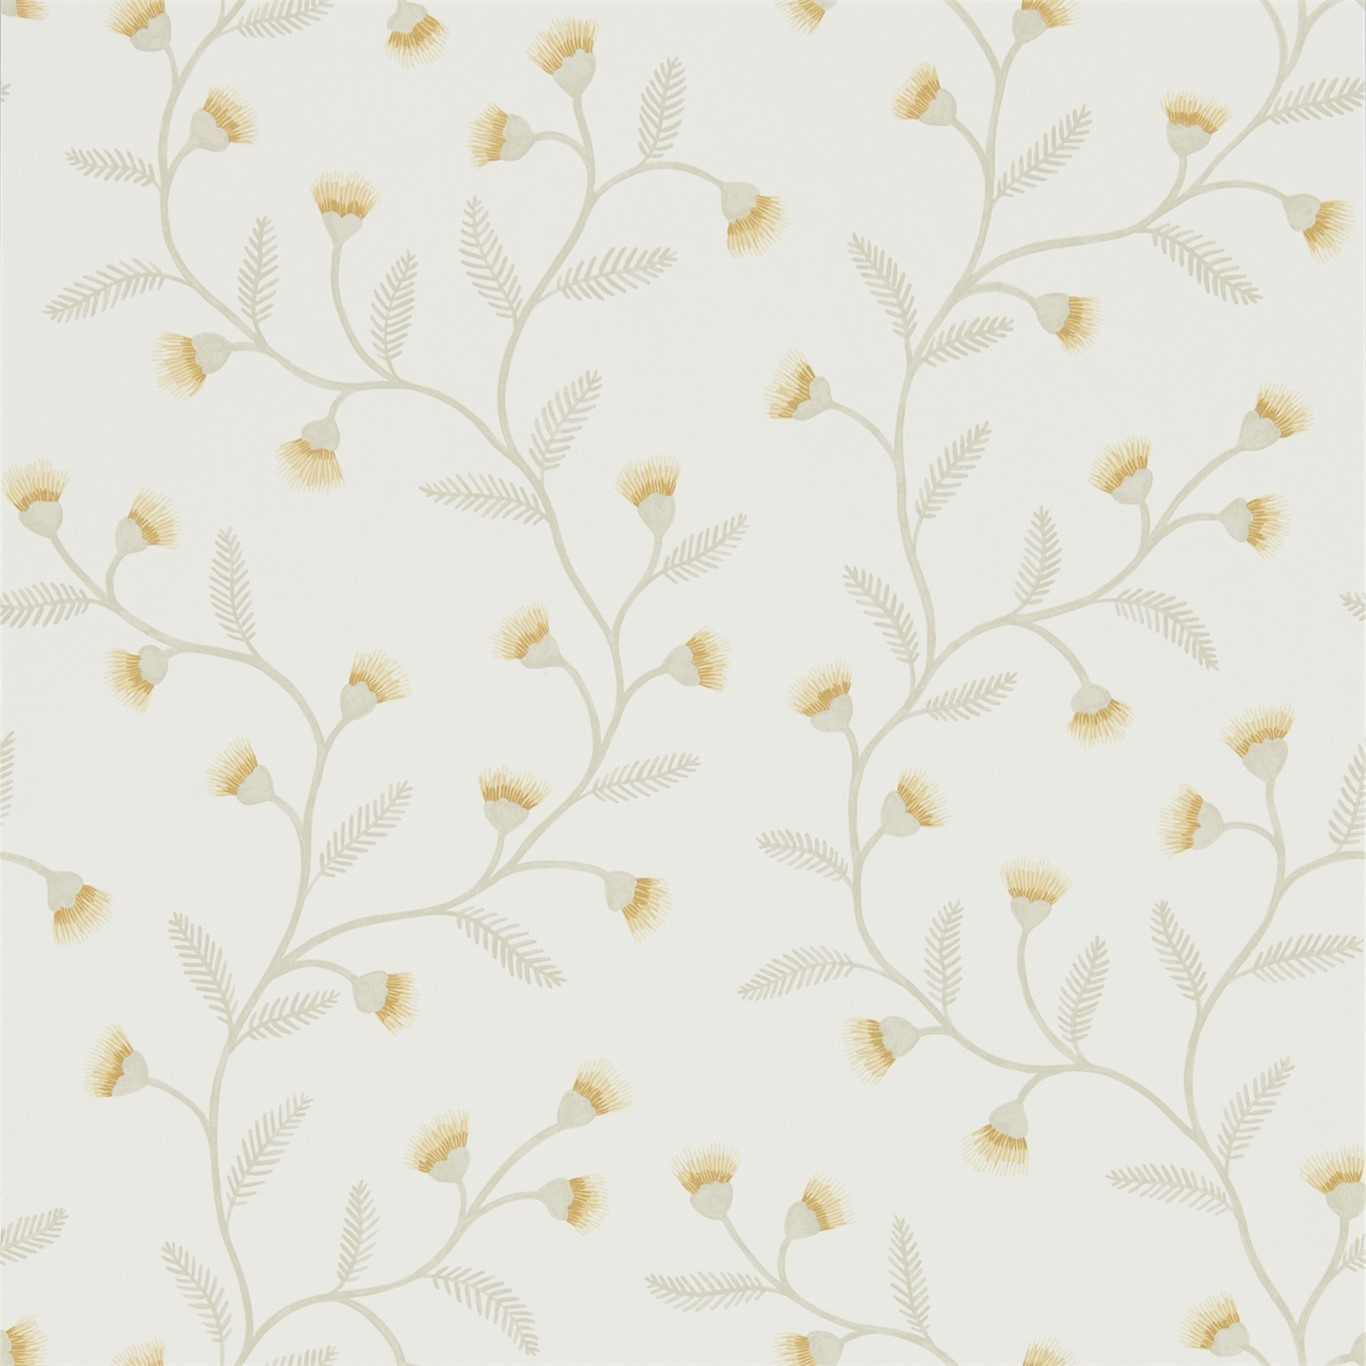 Image of Sanderson Home Everly Barley Wallpaper 216375